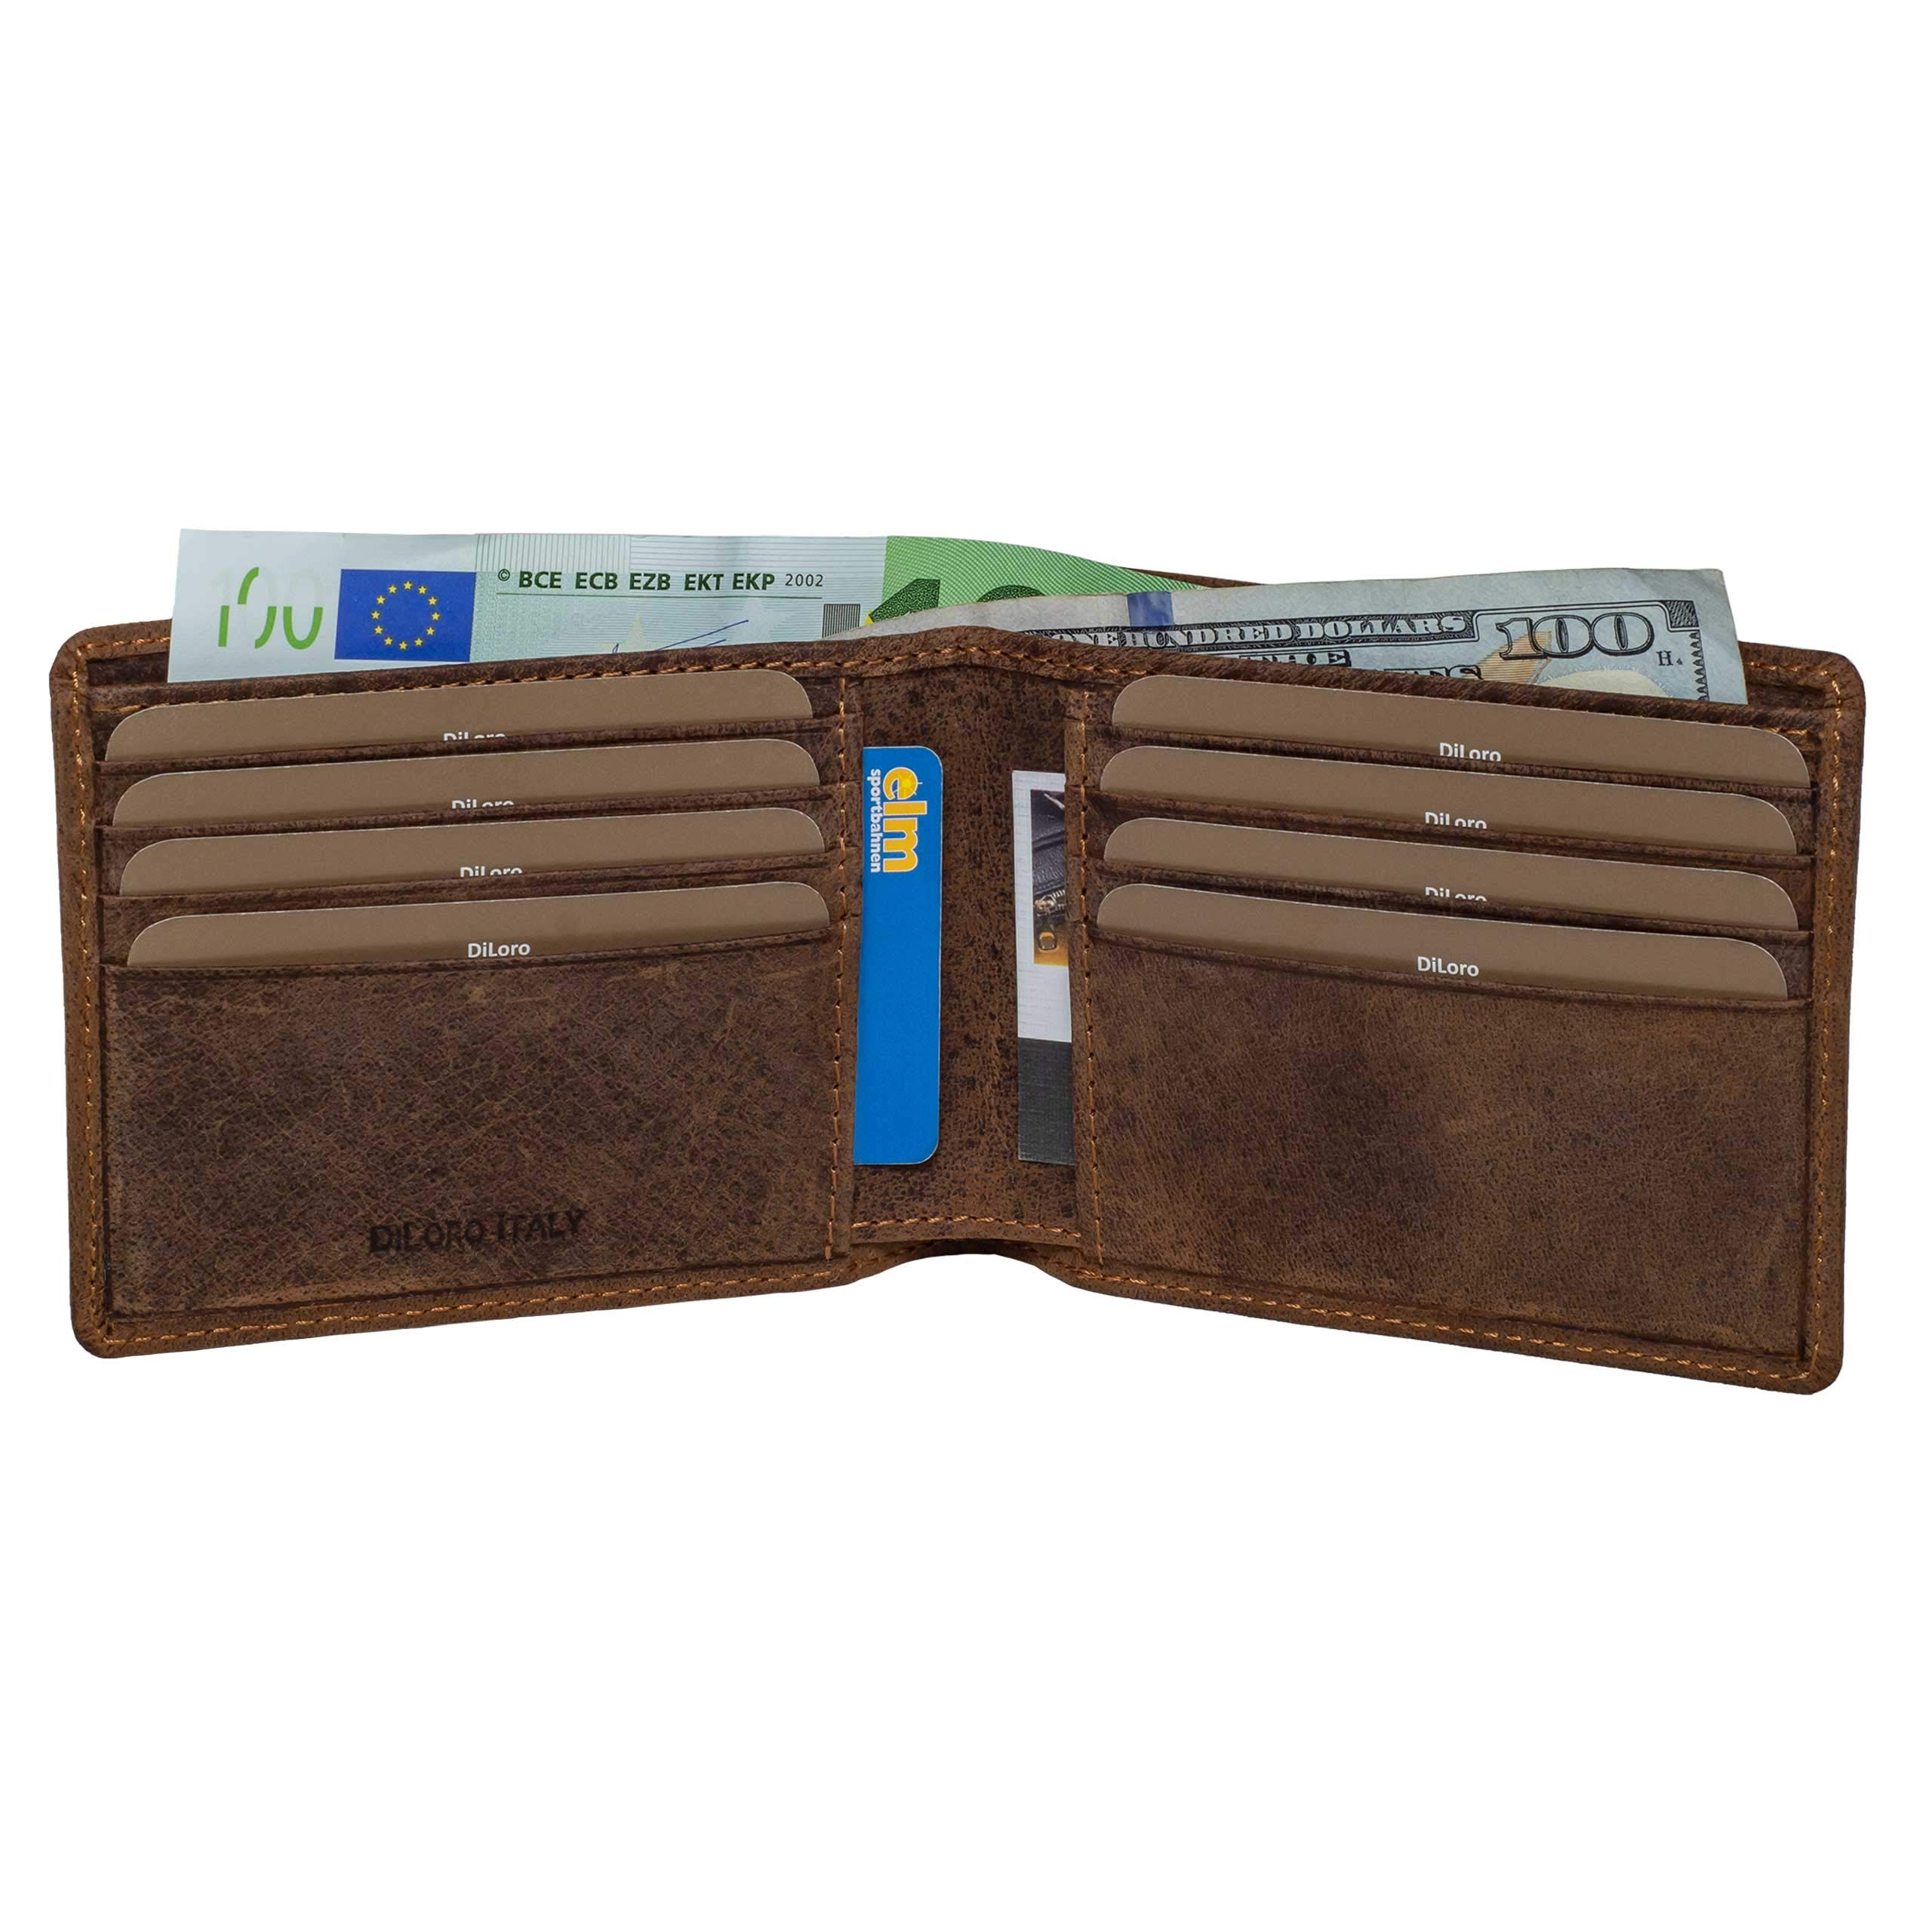 Diloro Men's Italy Slim Pocket Leather Bifold Soft Nappa Travel Leather Wallet RFID Safe In Dark Hunter 1712, Brown by DiLoro